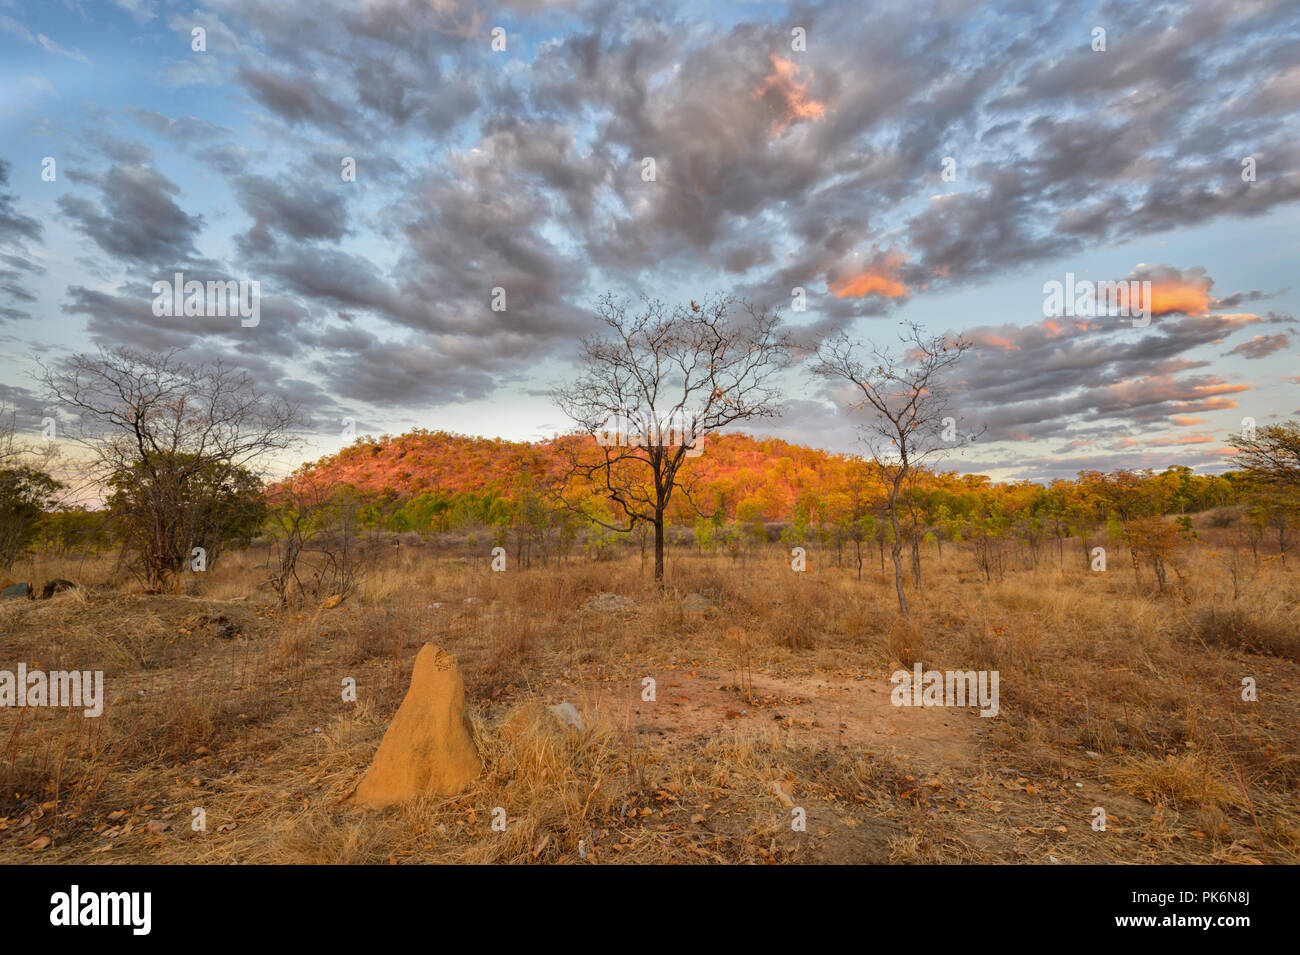 atmospheric-sunrise-in-the-outback-at-ch